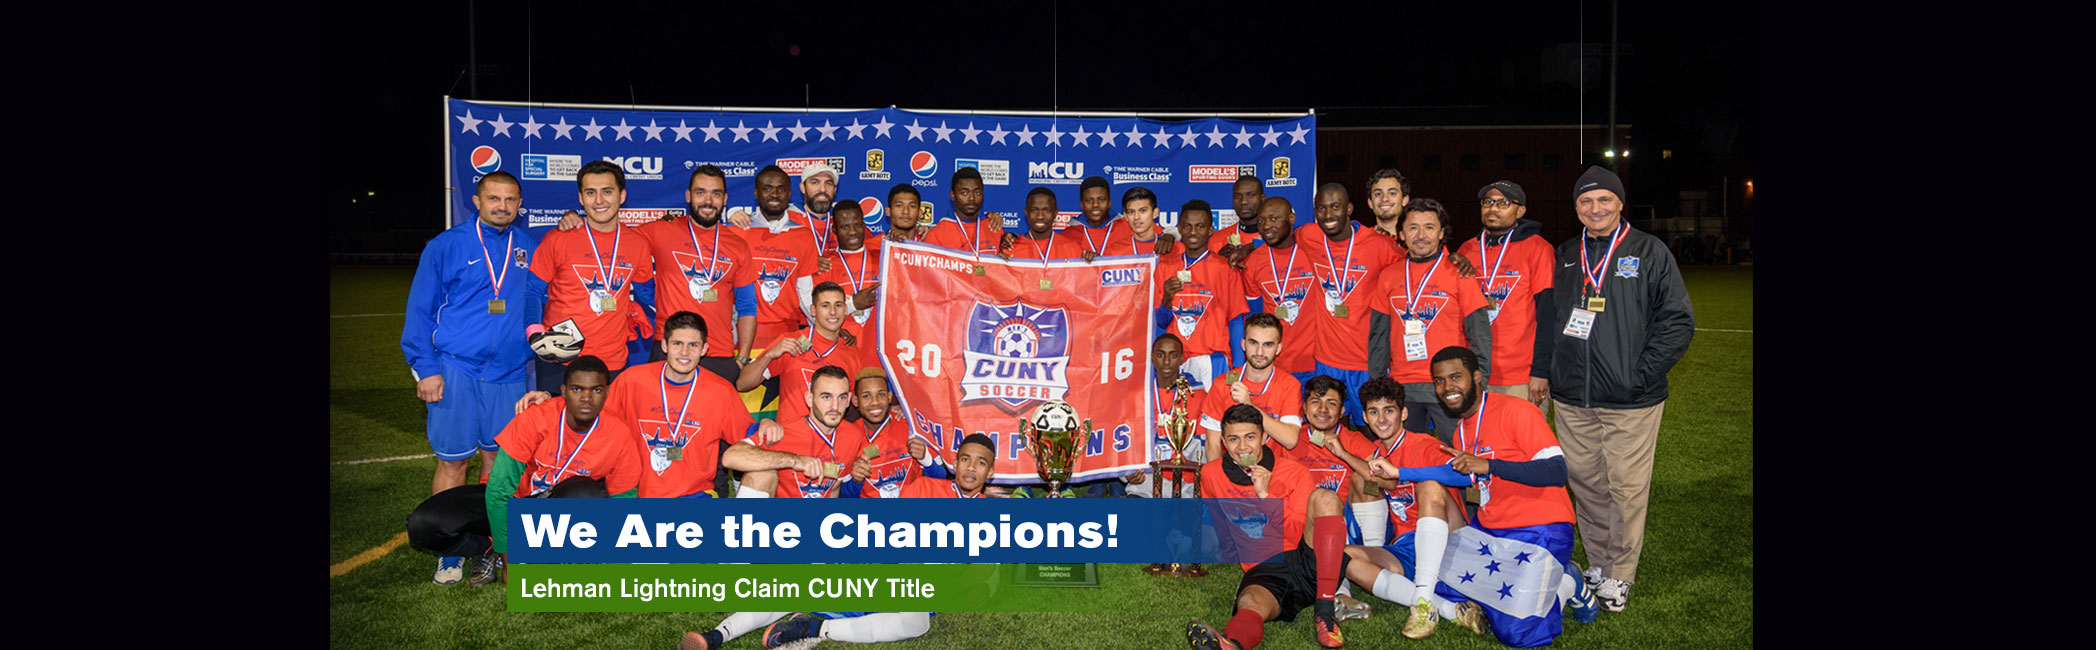 Lehman College CUNY Soccer Champions